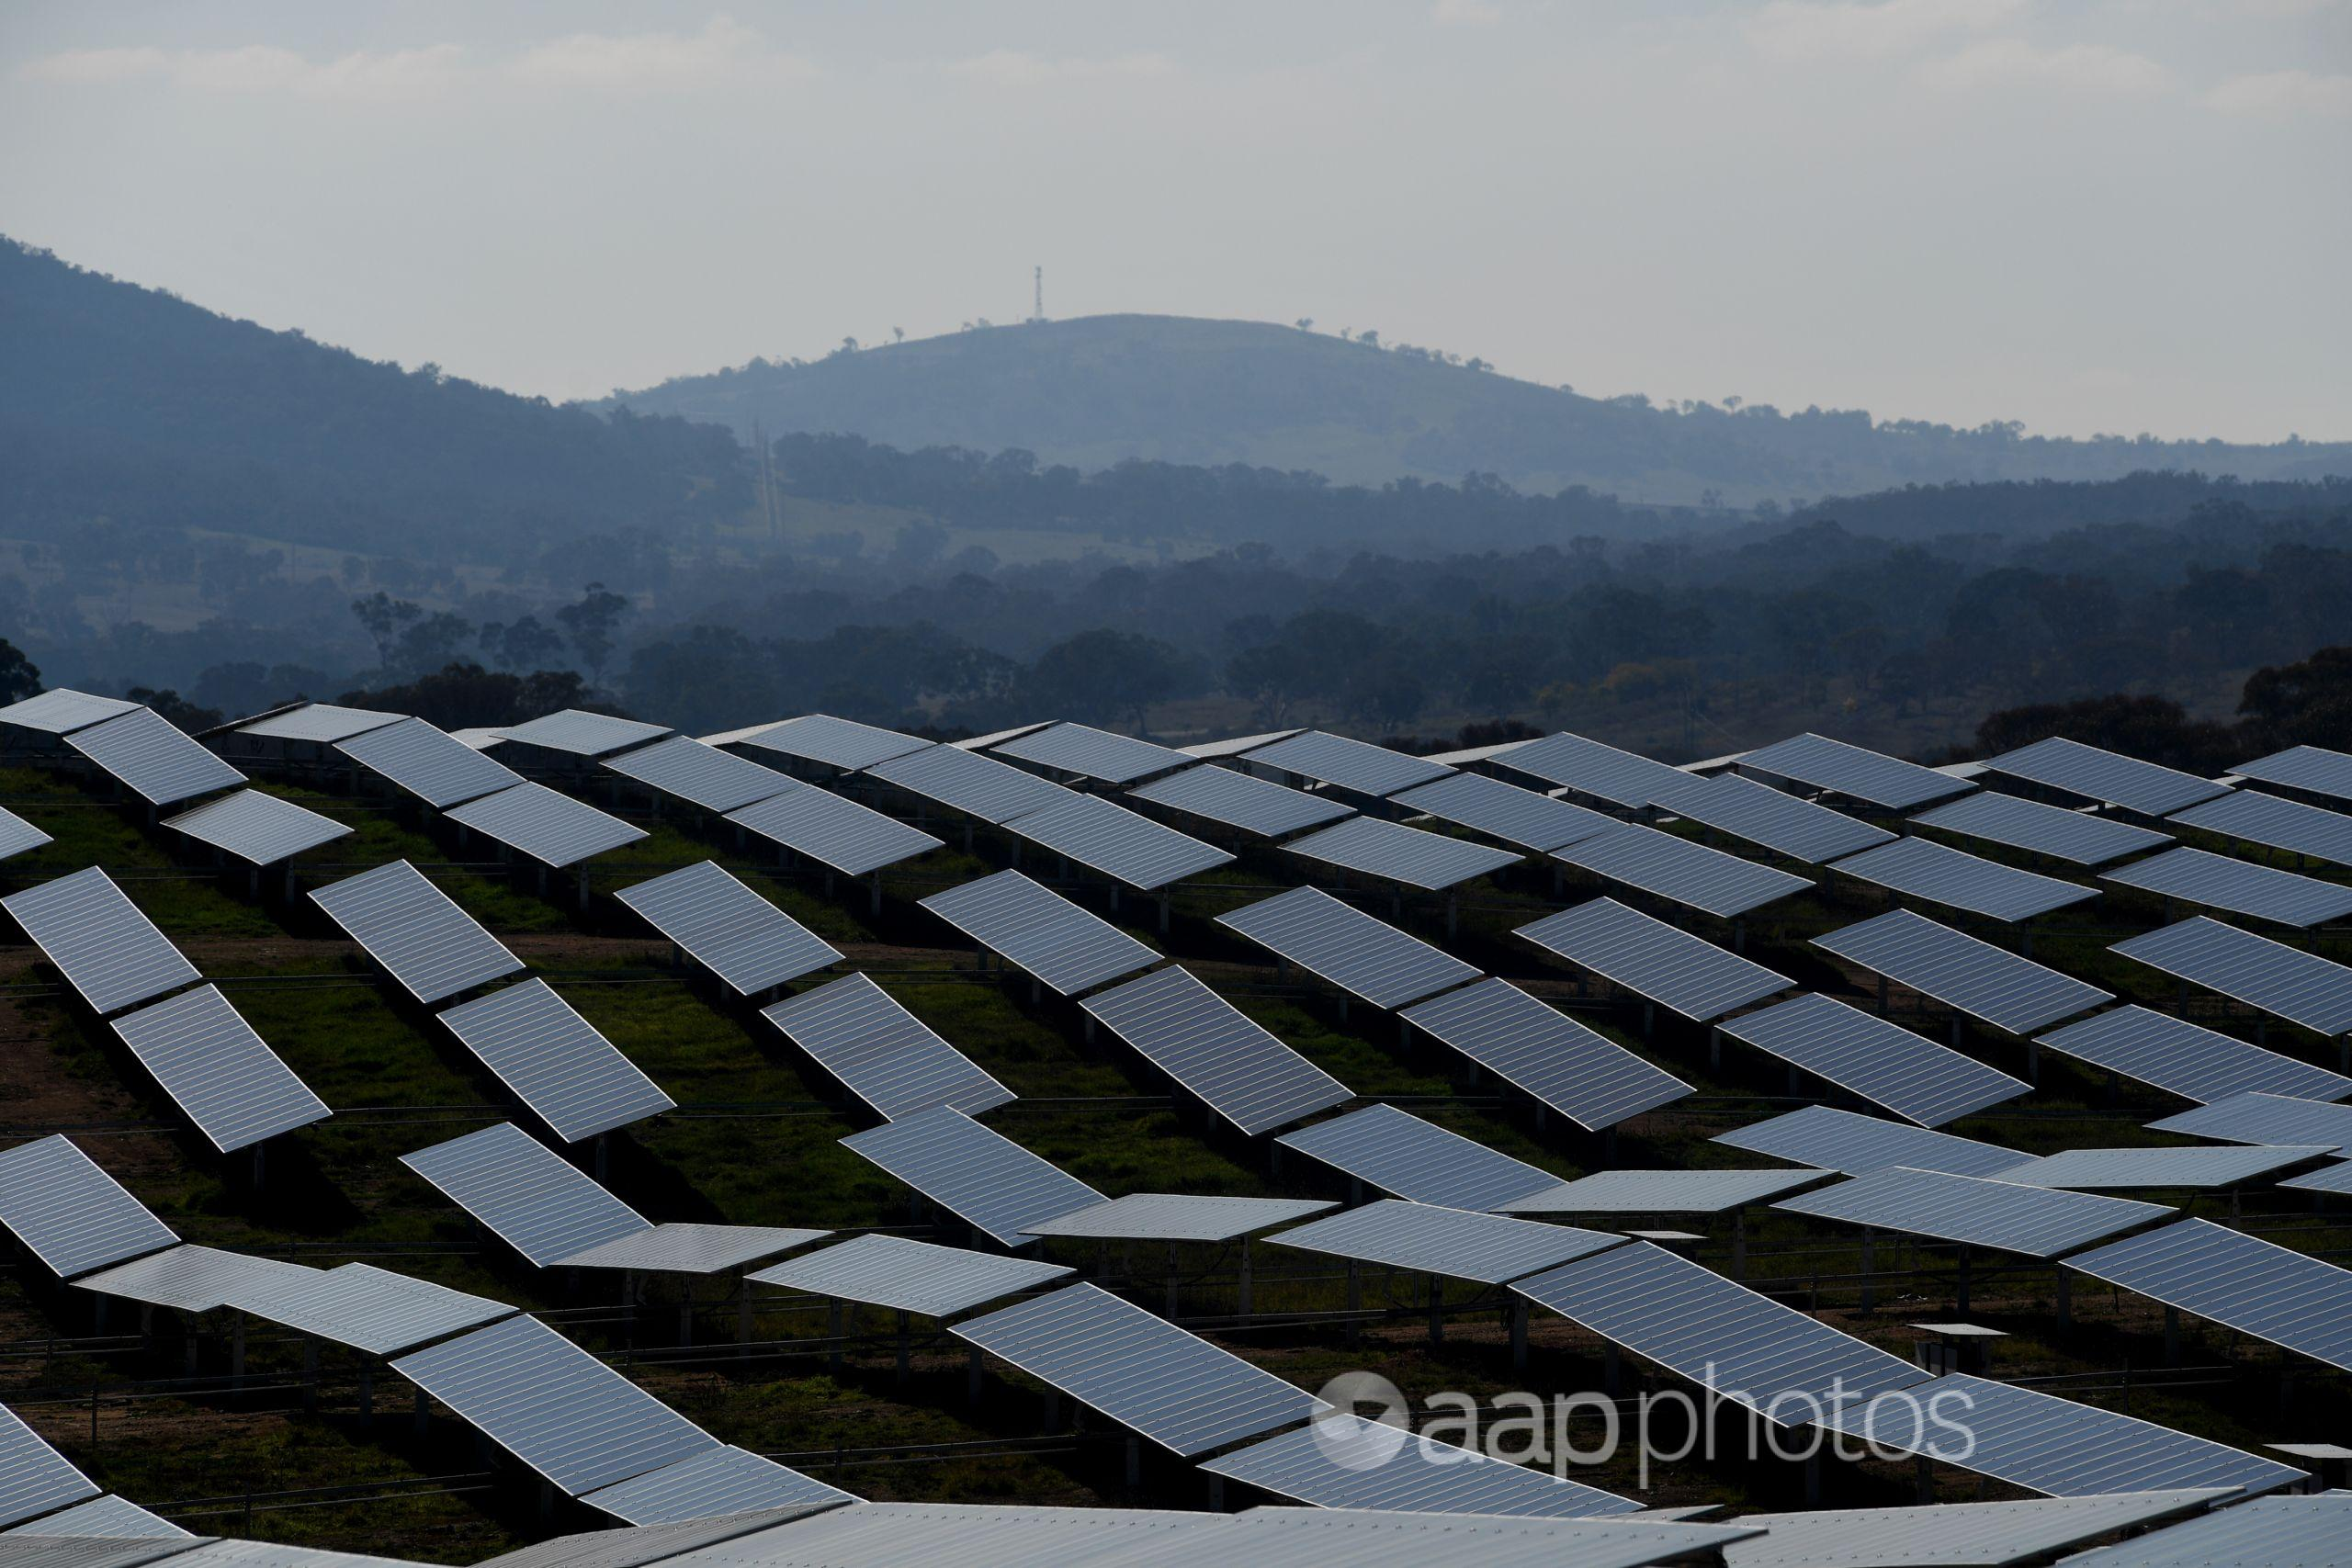 A solar farm outside Canberra